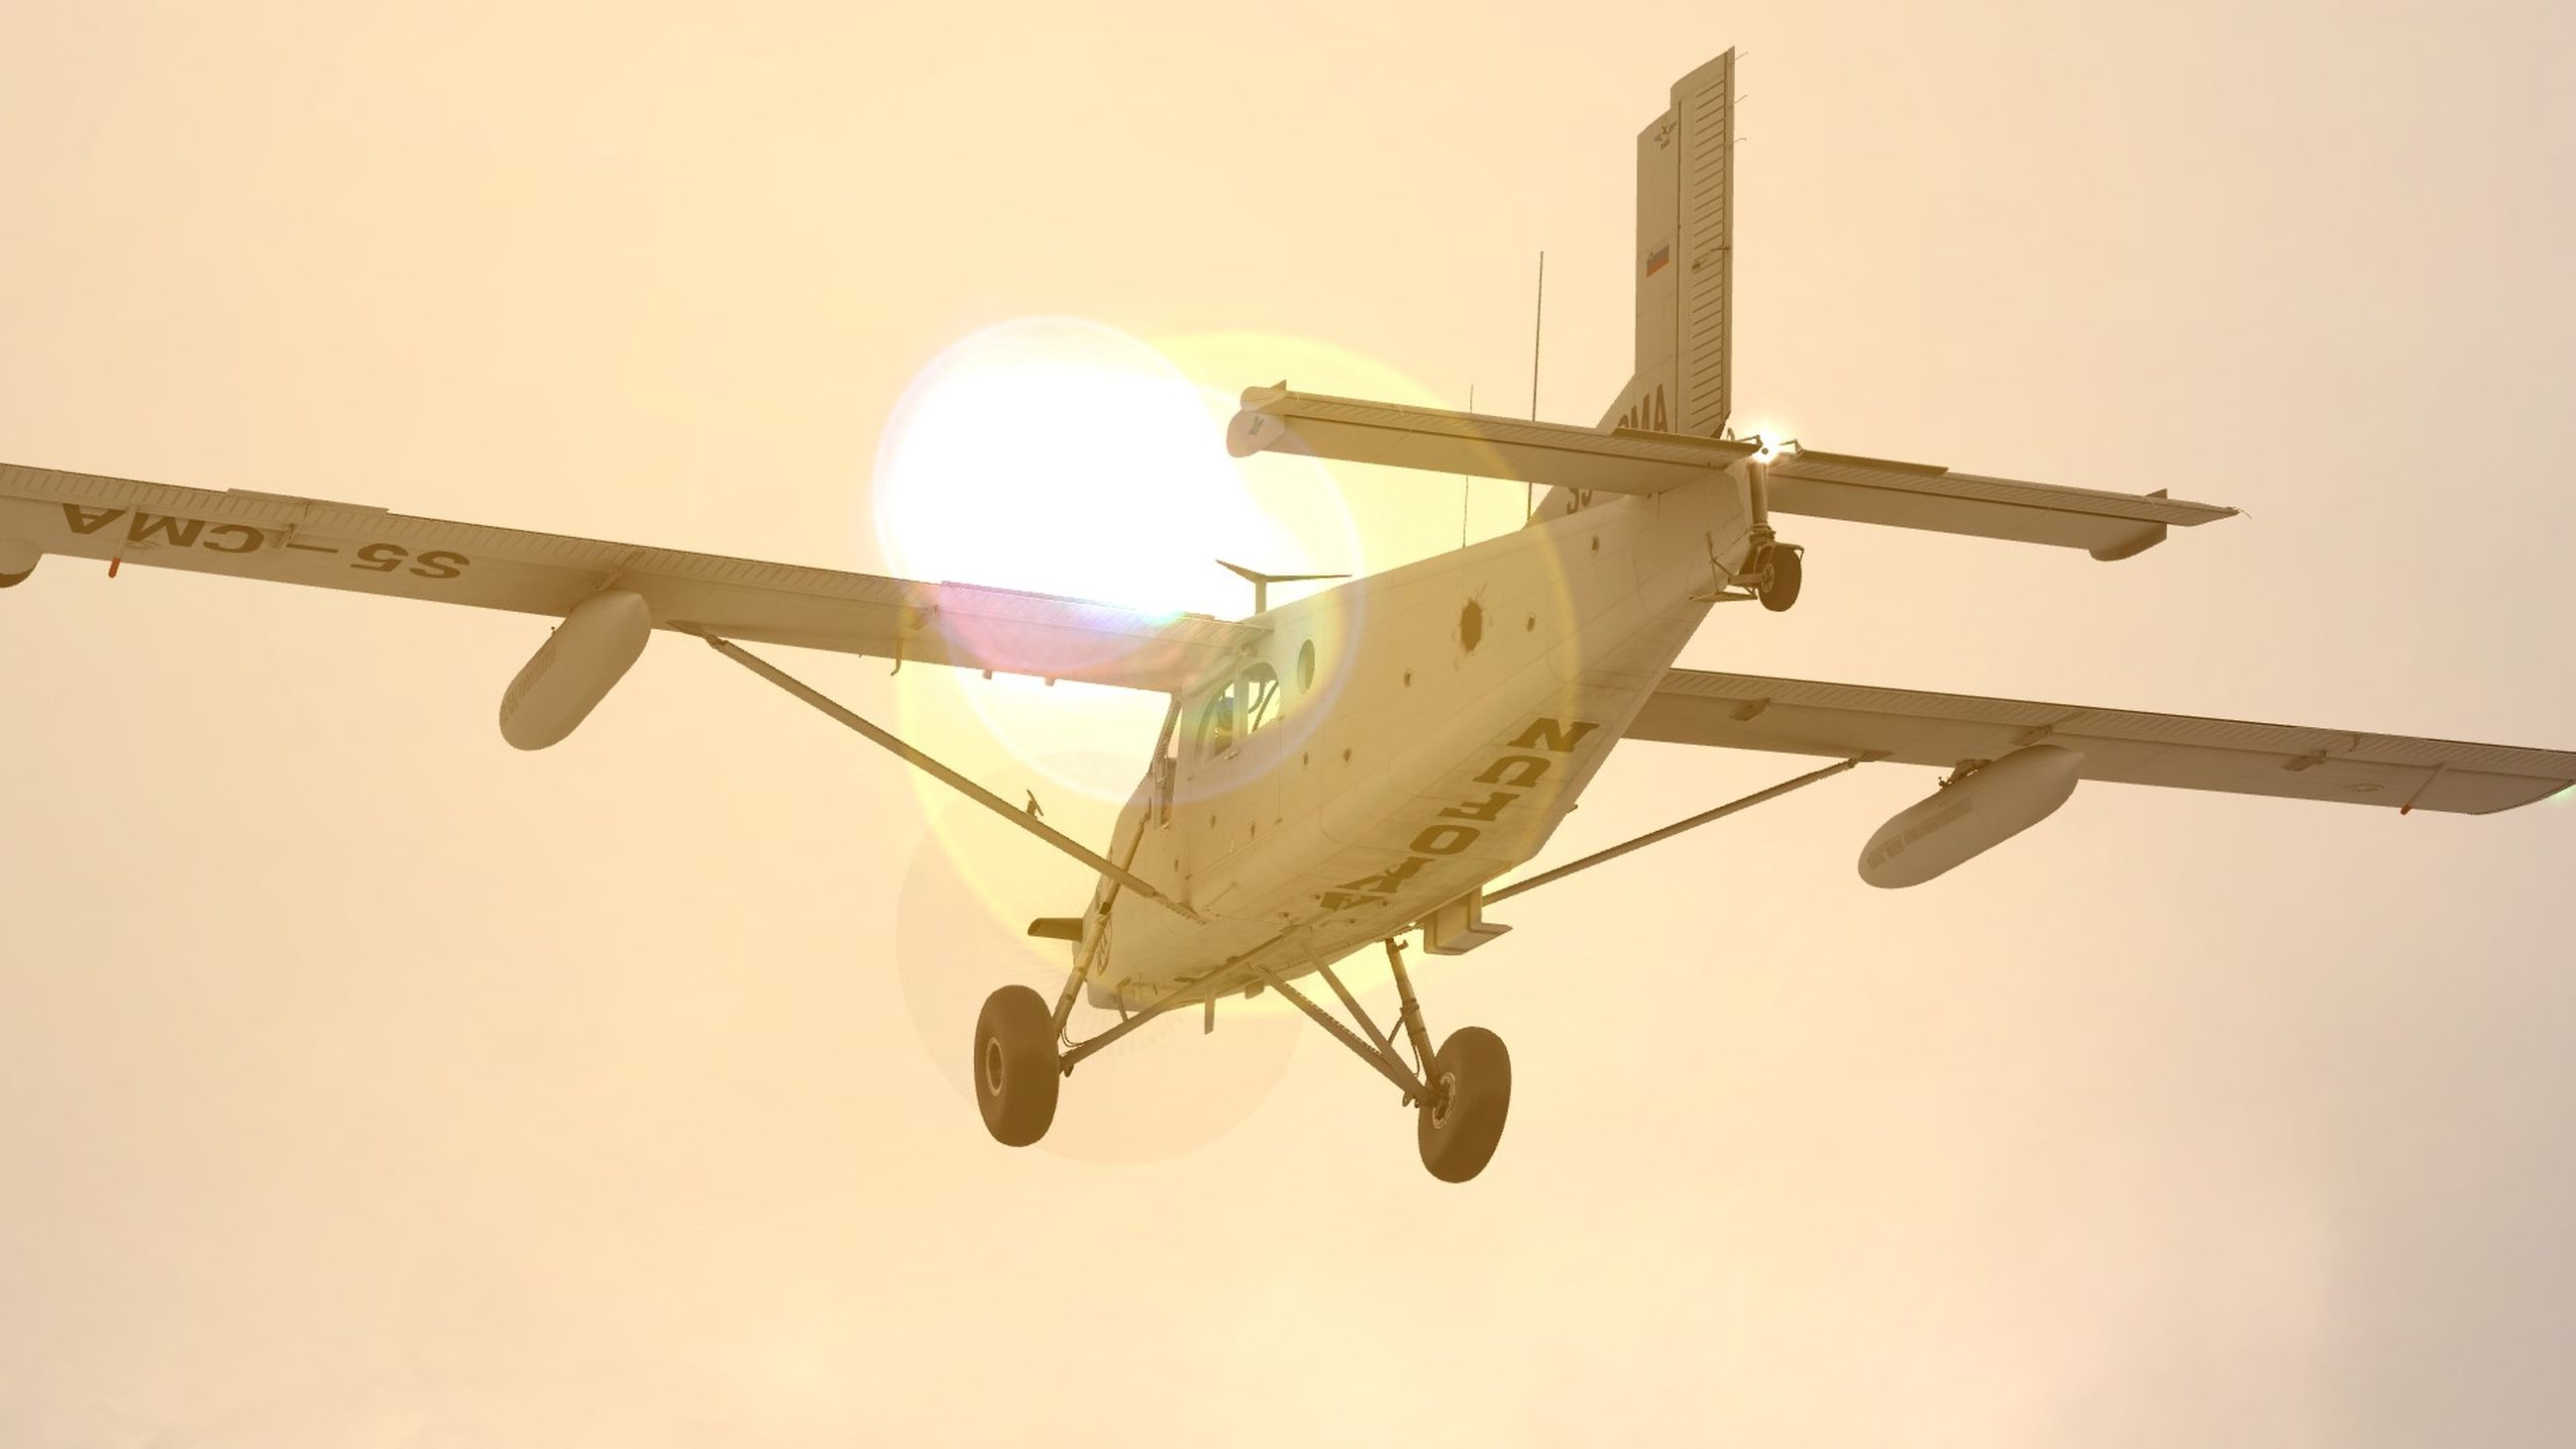 air vehicle, airplane, sky, mode of transportation, transportation, flying, nature, sunset, mid-air, low angle view, on the move, travel, no people, outdoors, motion, sunlight, aircraft wing, sun, journey, clear sky, aerospace industry